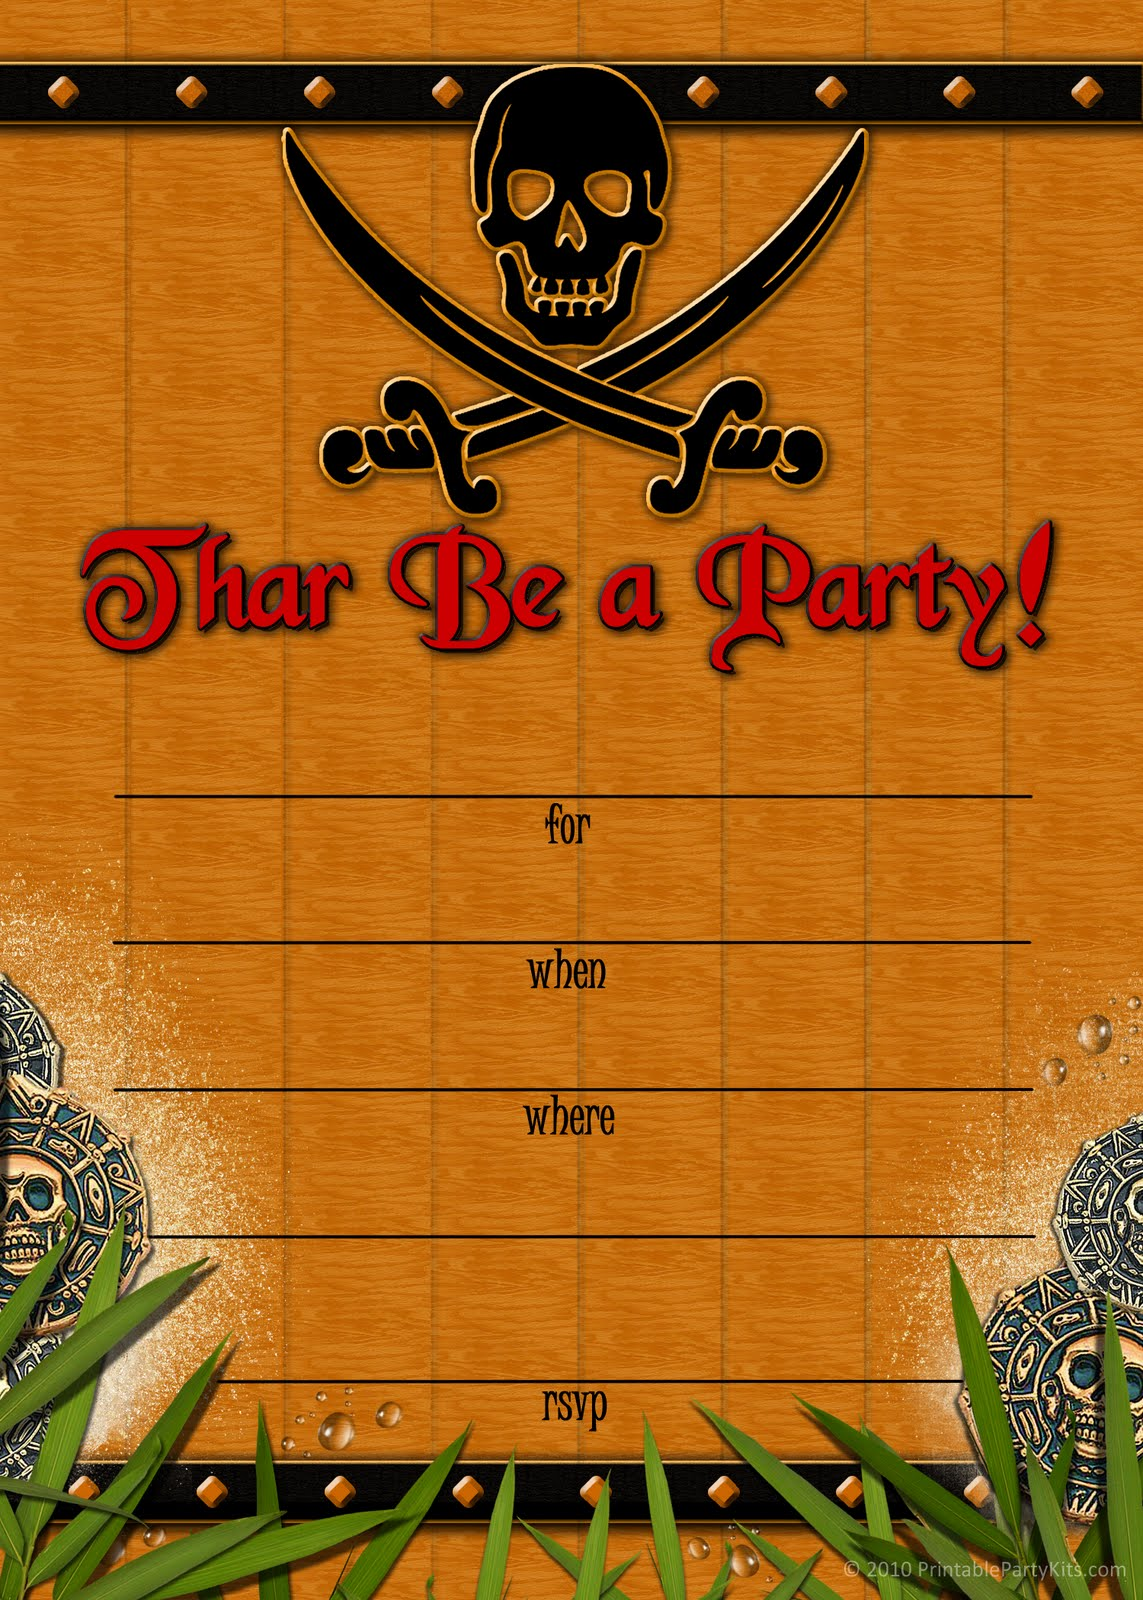 Free Printable Party Invitations: Skull and Crossbones Pirate ...